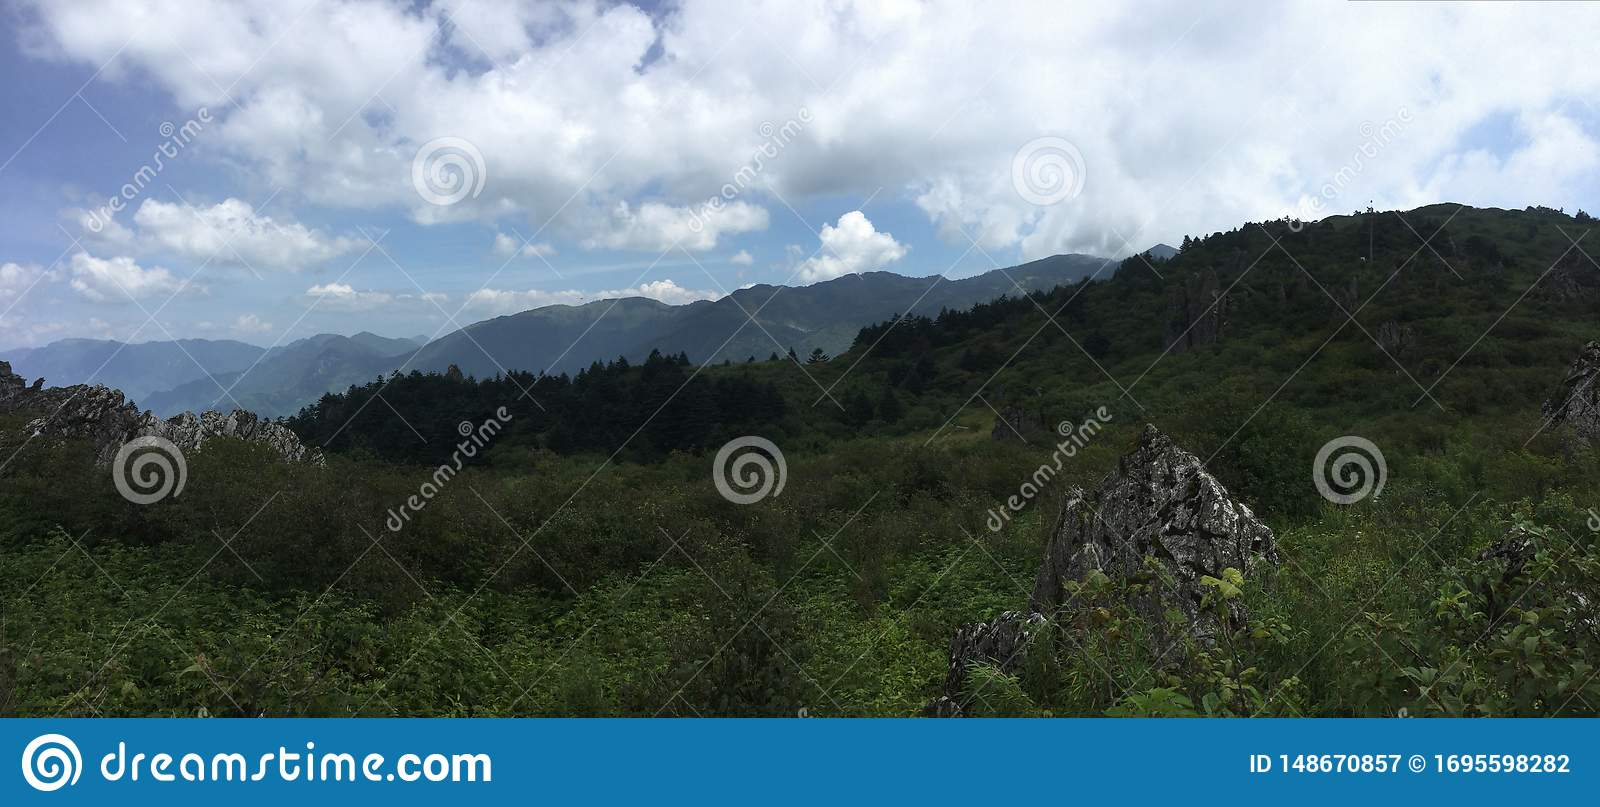 Blue sky, empty mountains, mountains in the distance, green, and many white clouds in the sky